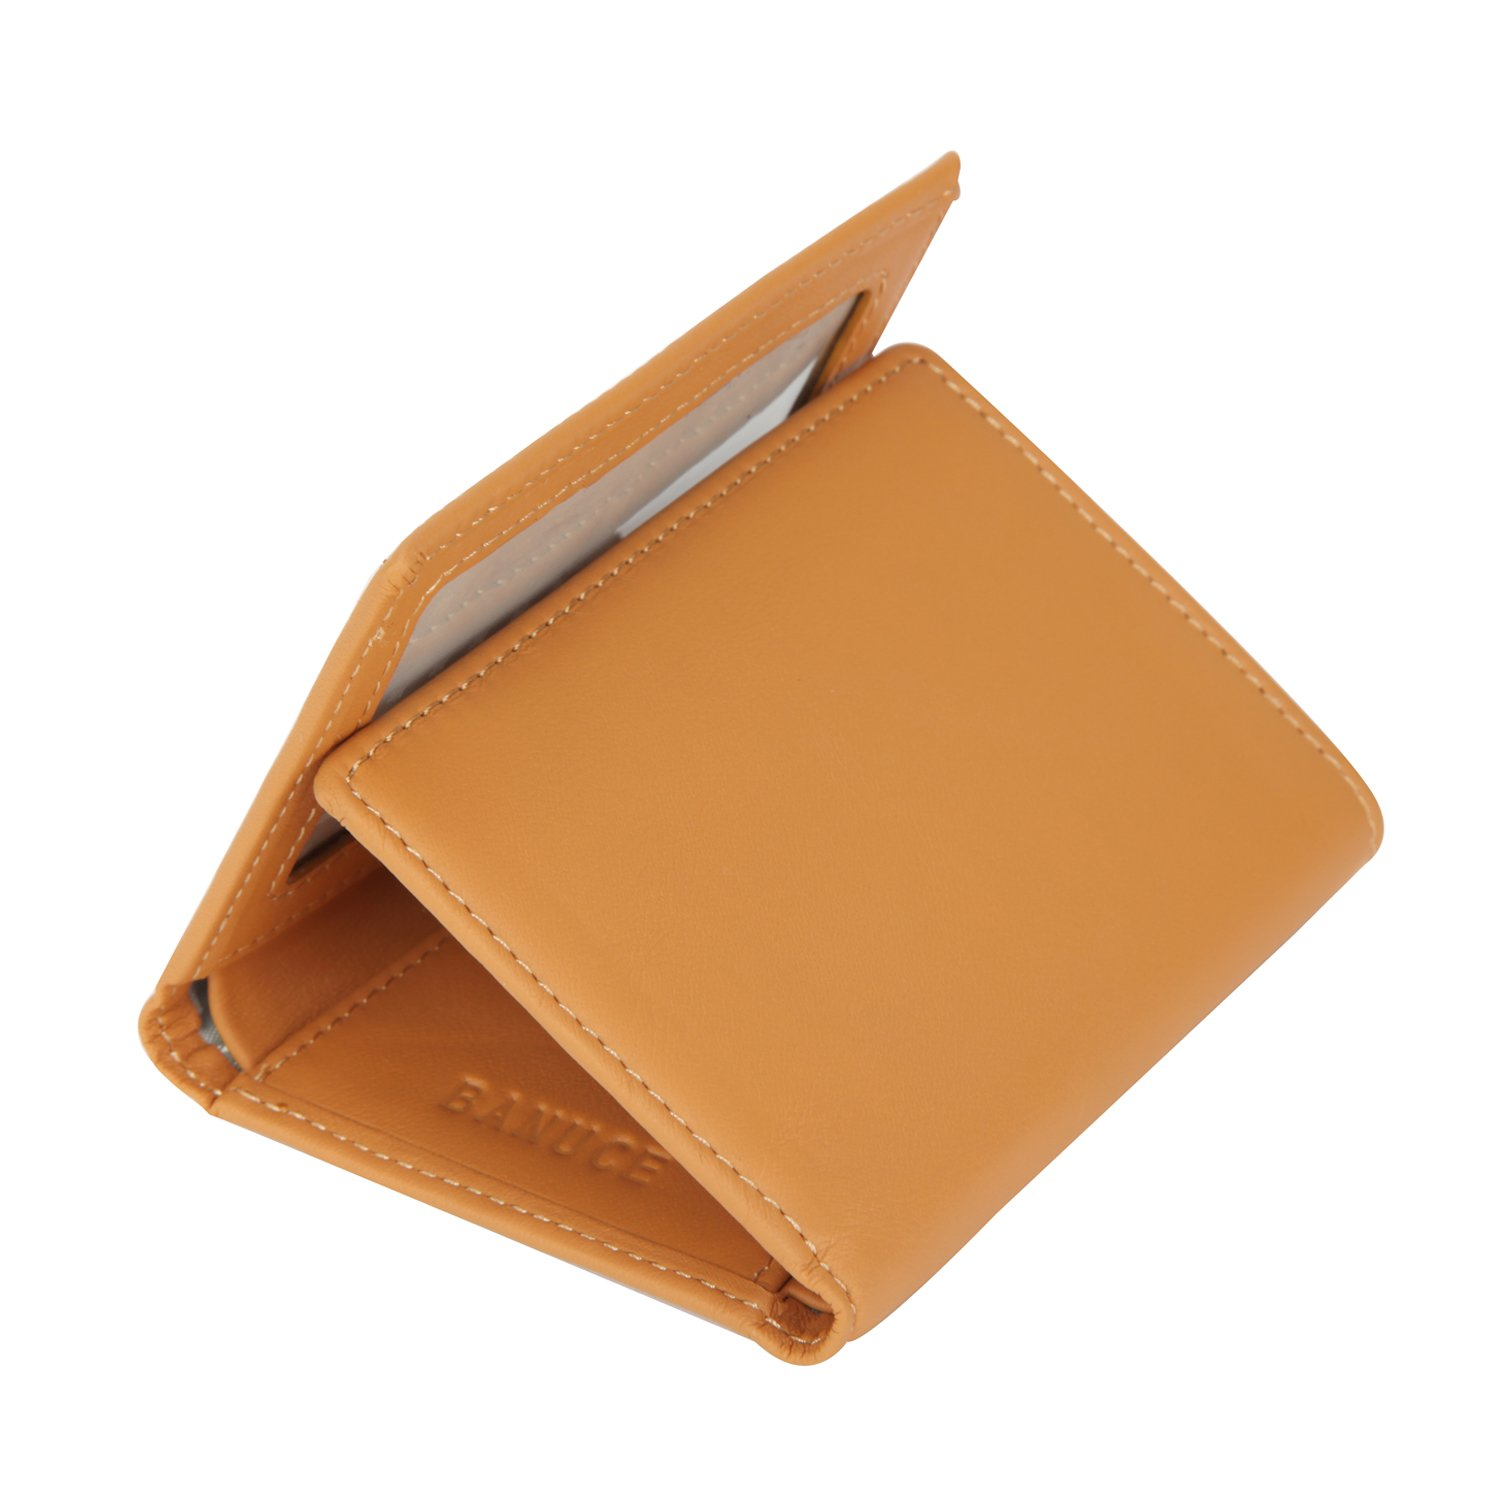 Banuce Women's Full Grains Genuine Leather Slim Small Item Trifold Wallet Color Light Brown by Banuce (Image #1)